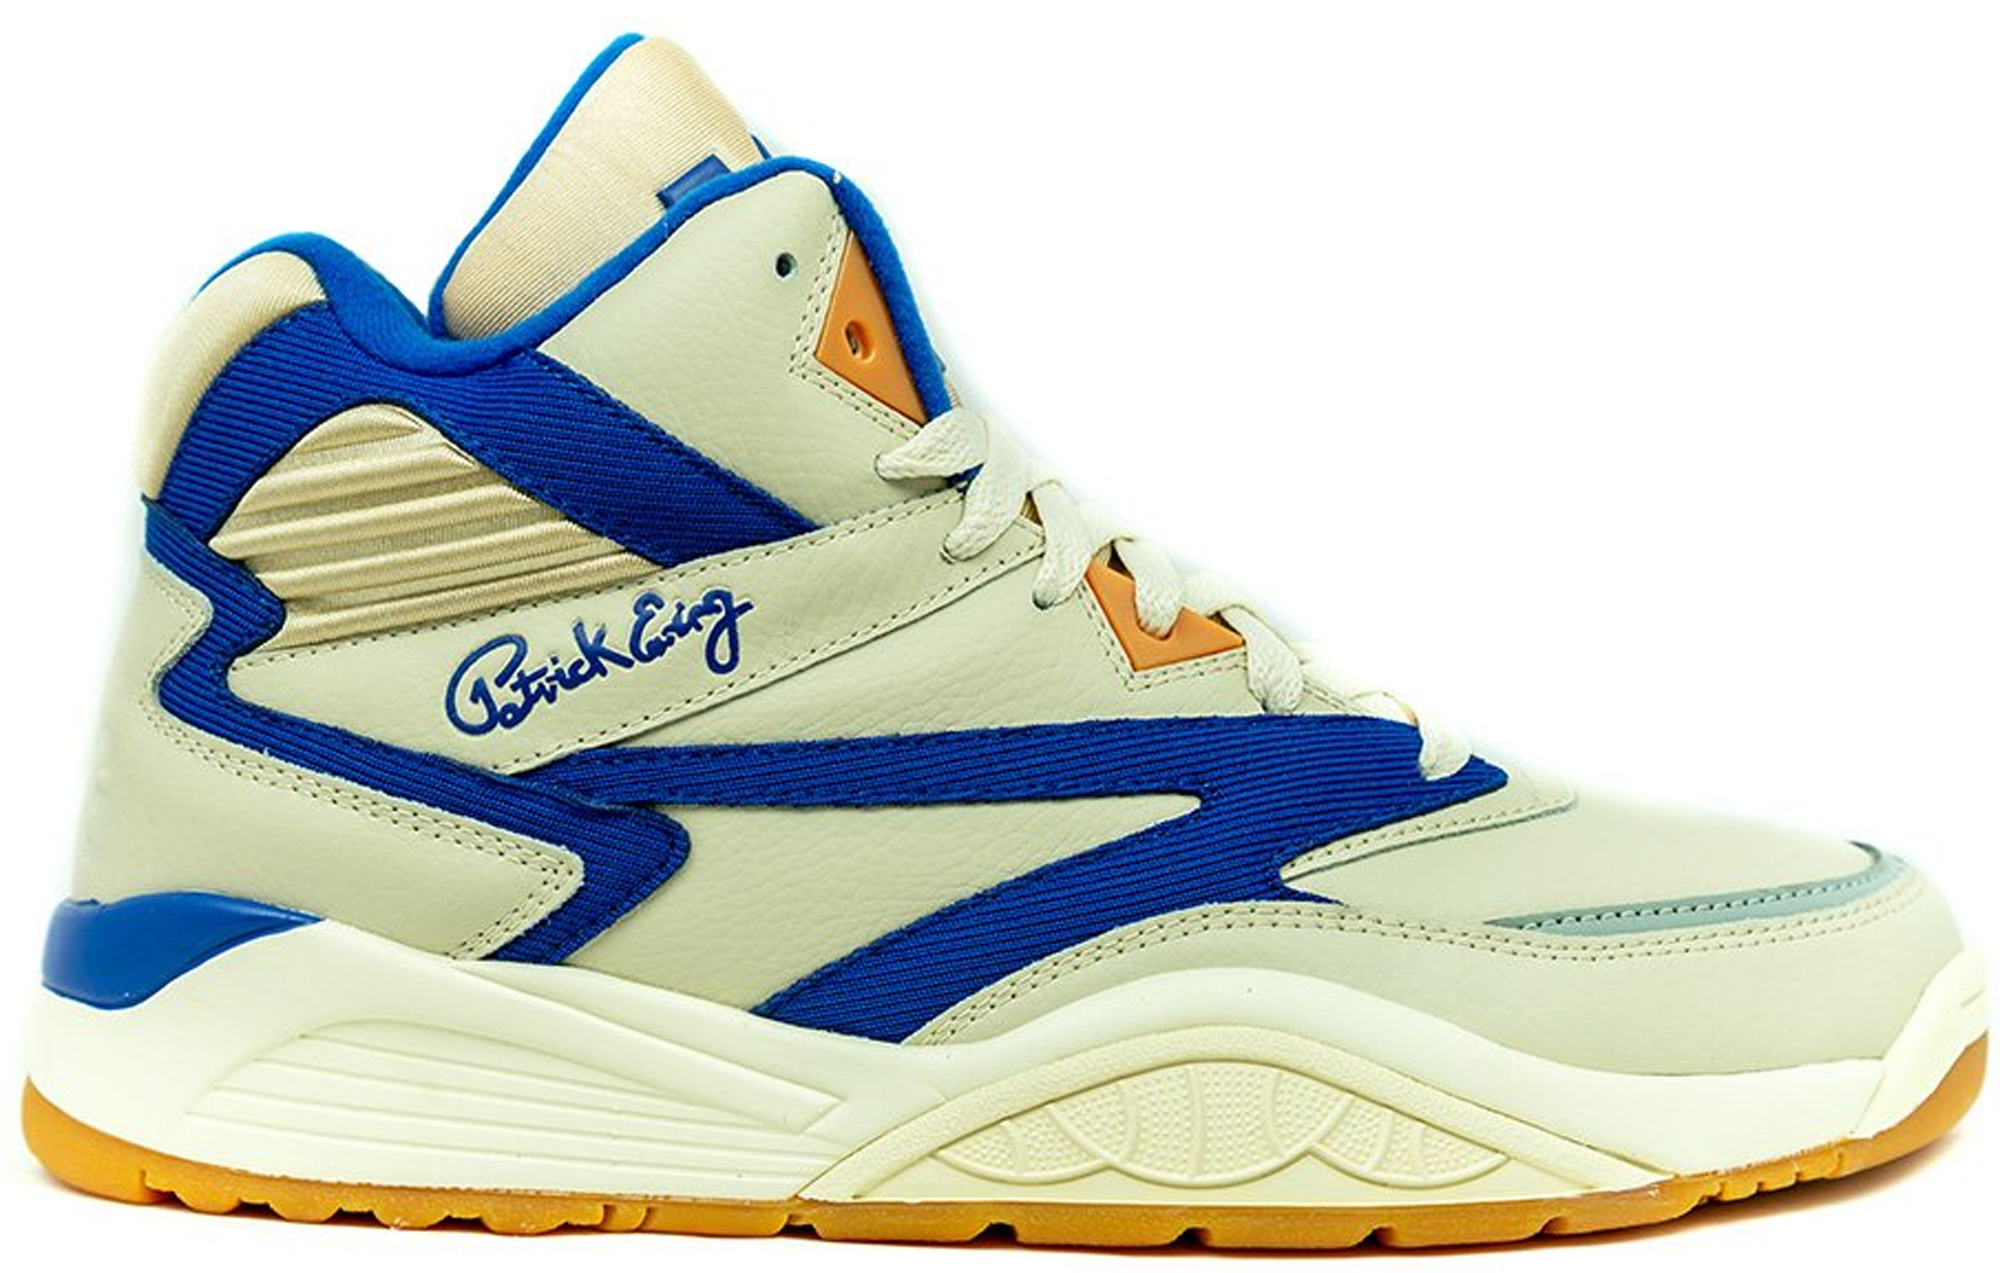 Ewing Sport Lite Mikey Likes It Ice